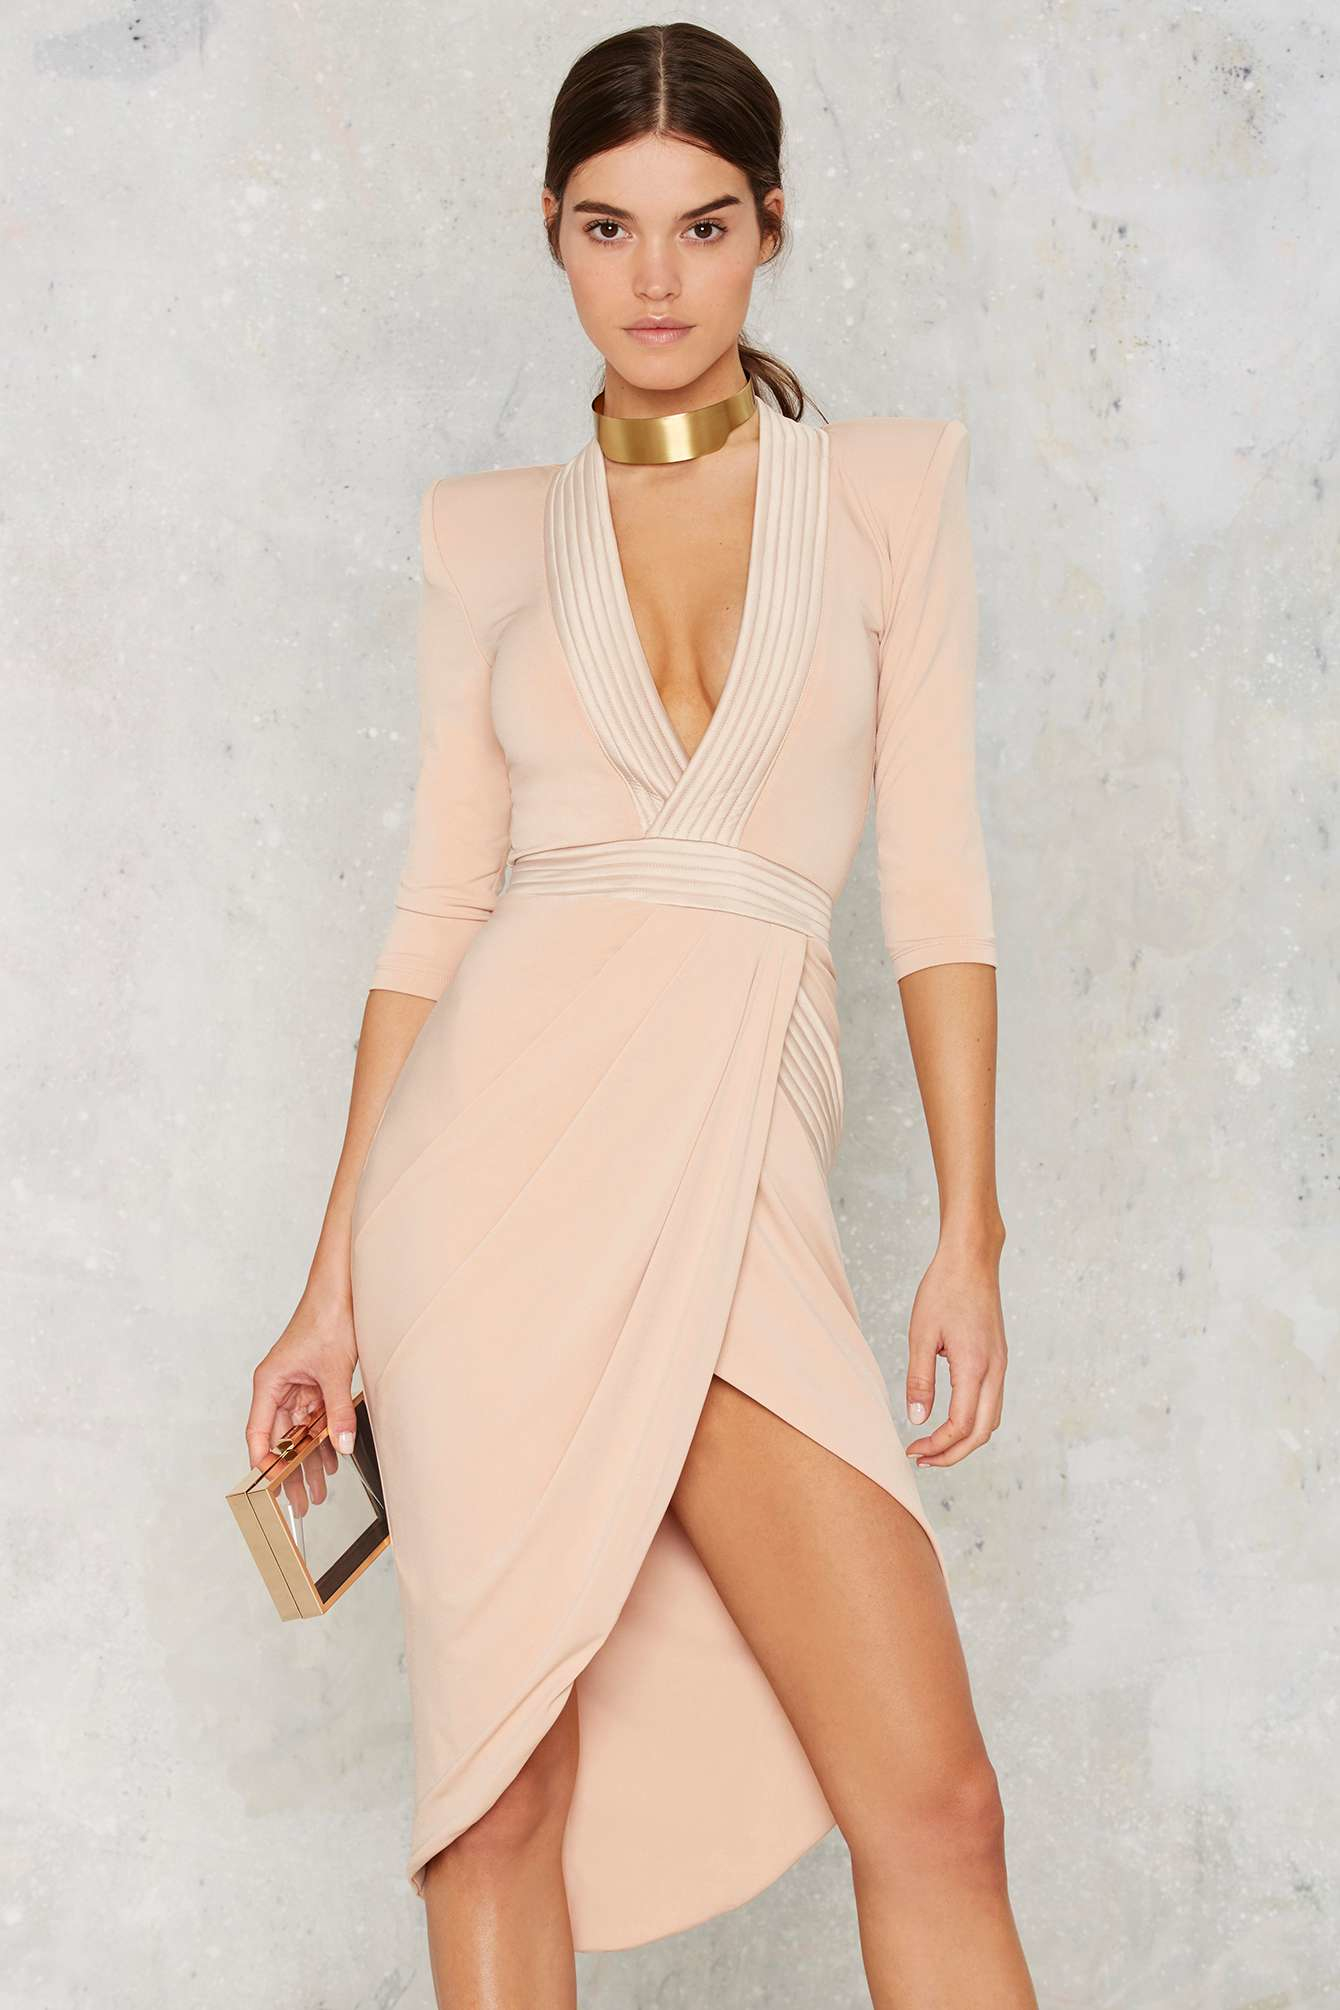 24171075a6dd Zhivago Eye Of Horus Slit Dress - Nude in Natural - Lyst